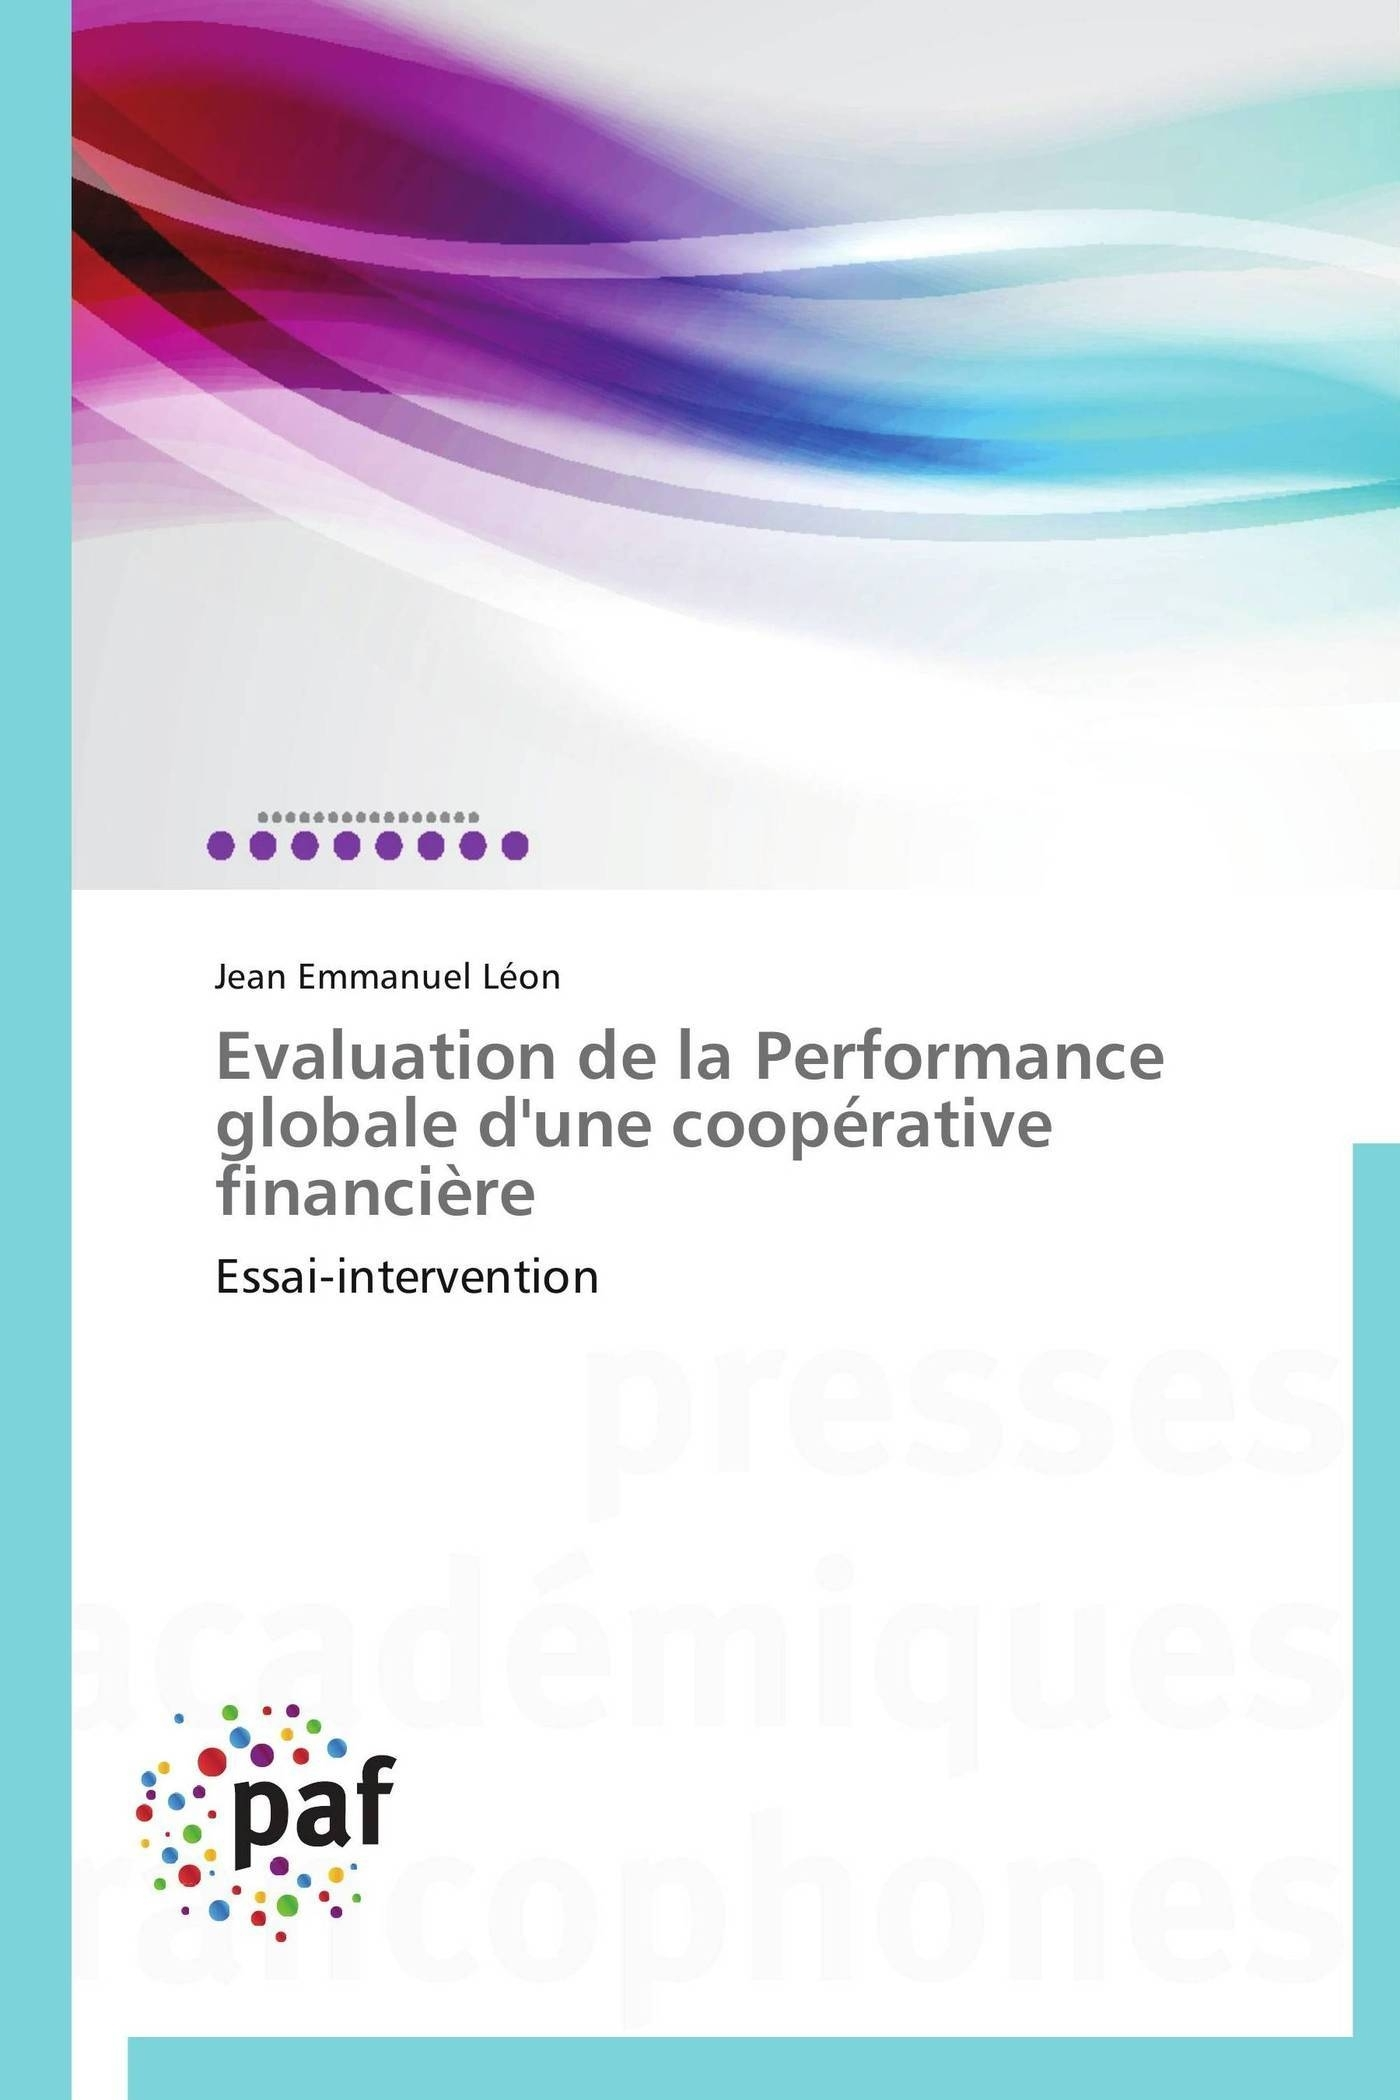 EVALUATION DE LA PERFORMANCE GLOBALE D'UNE COOPERATIVE FINANCIERE